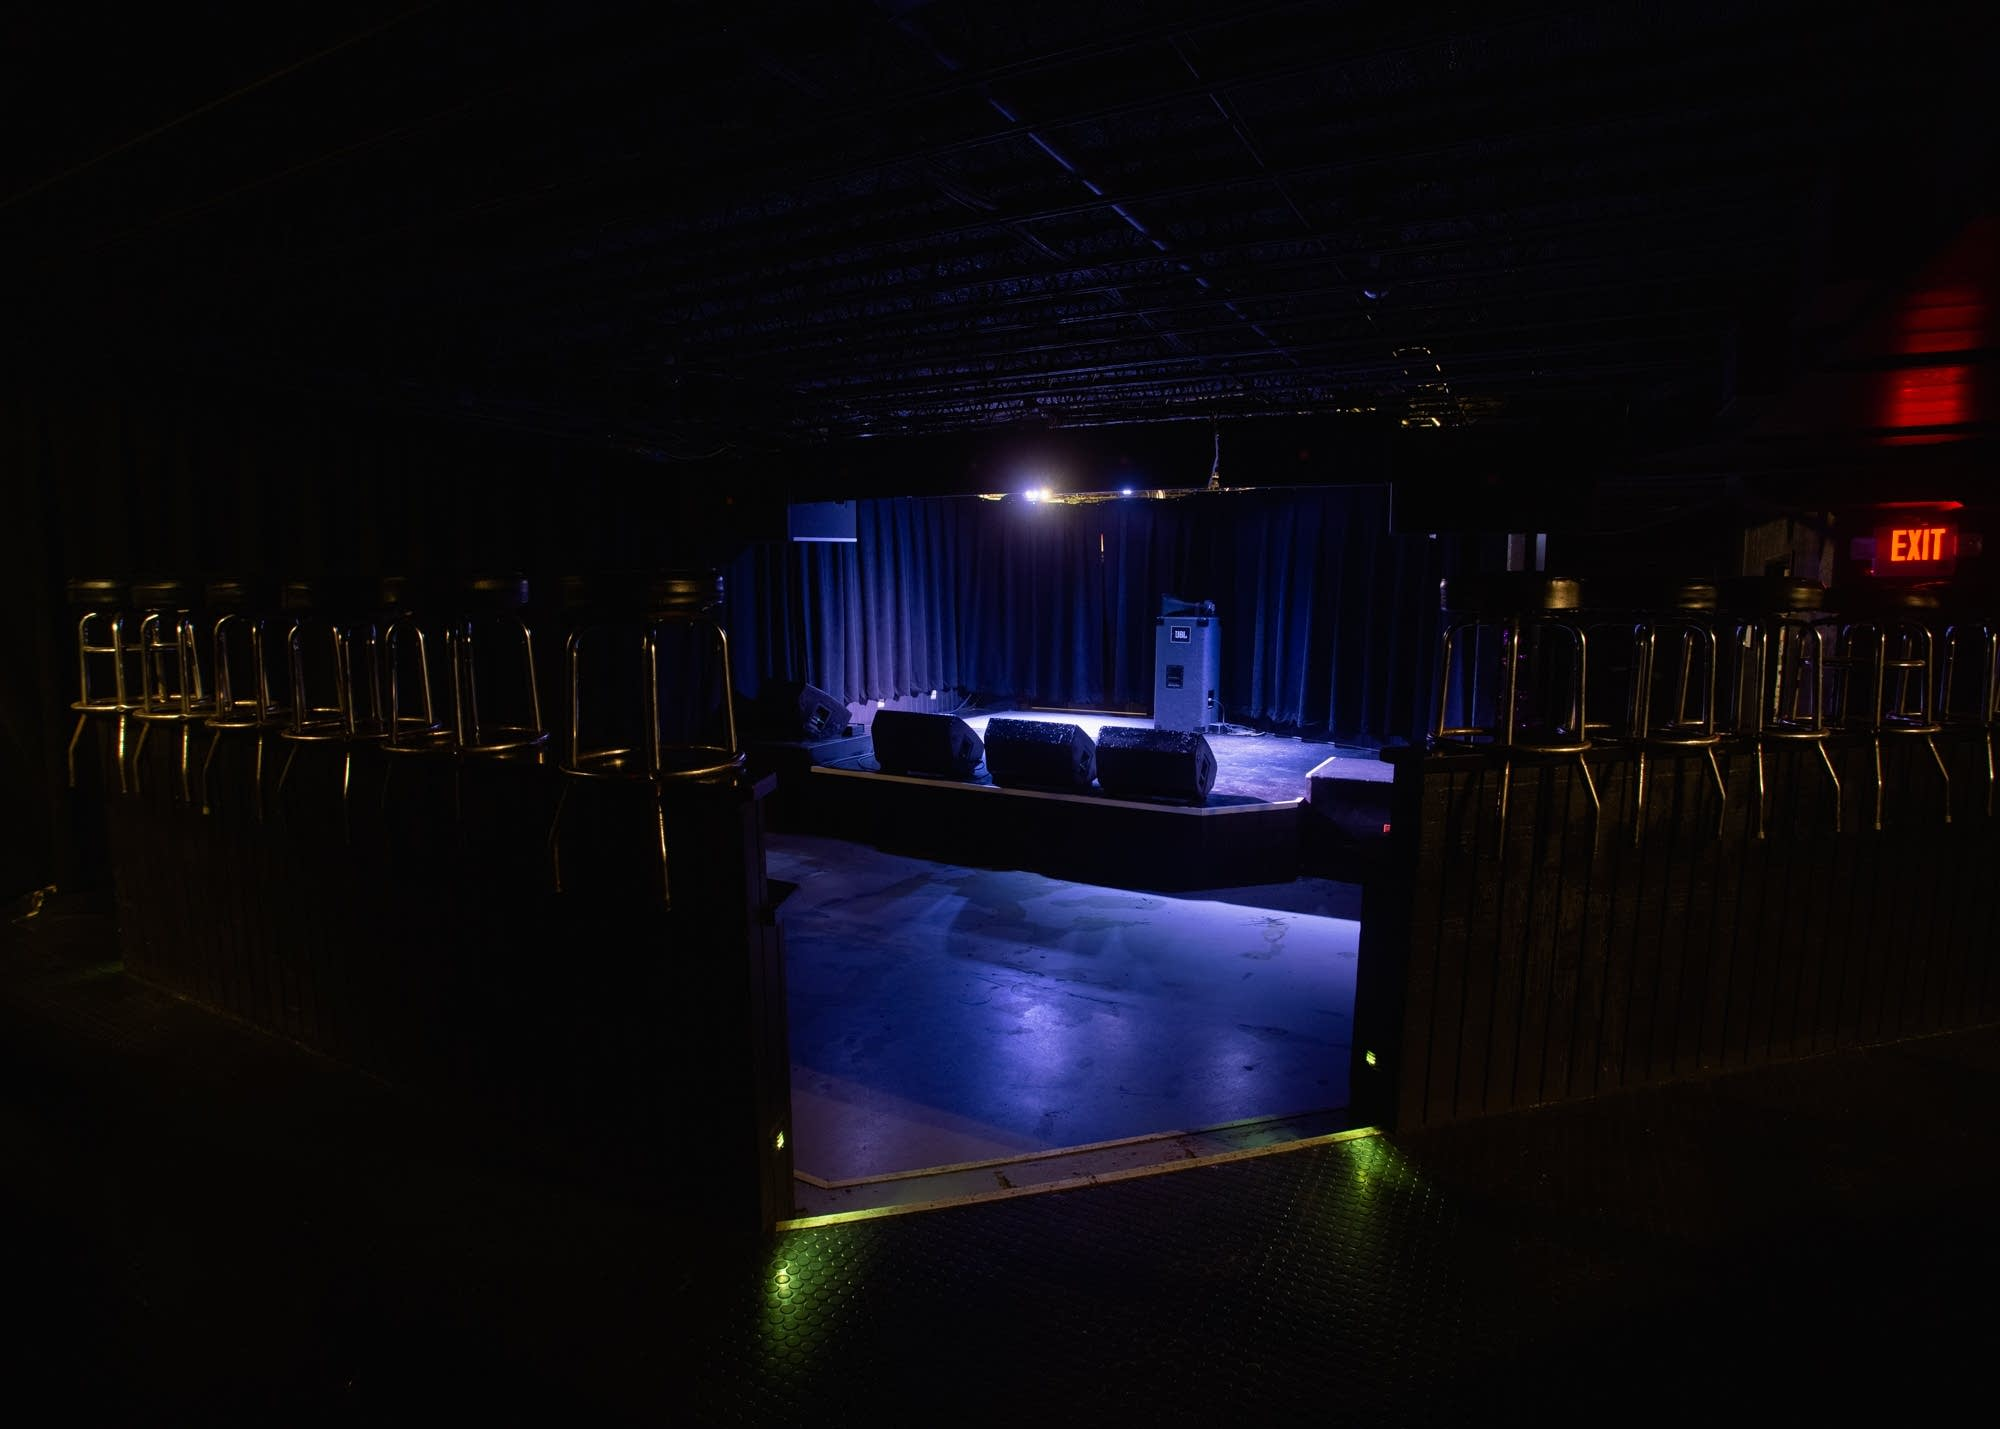 The interior of the 7th St Entry. The empty stage is lit purple.